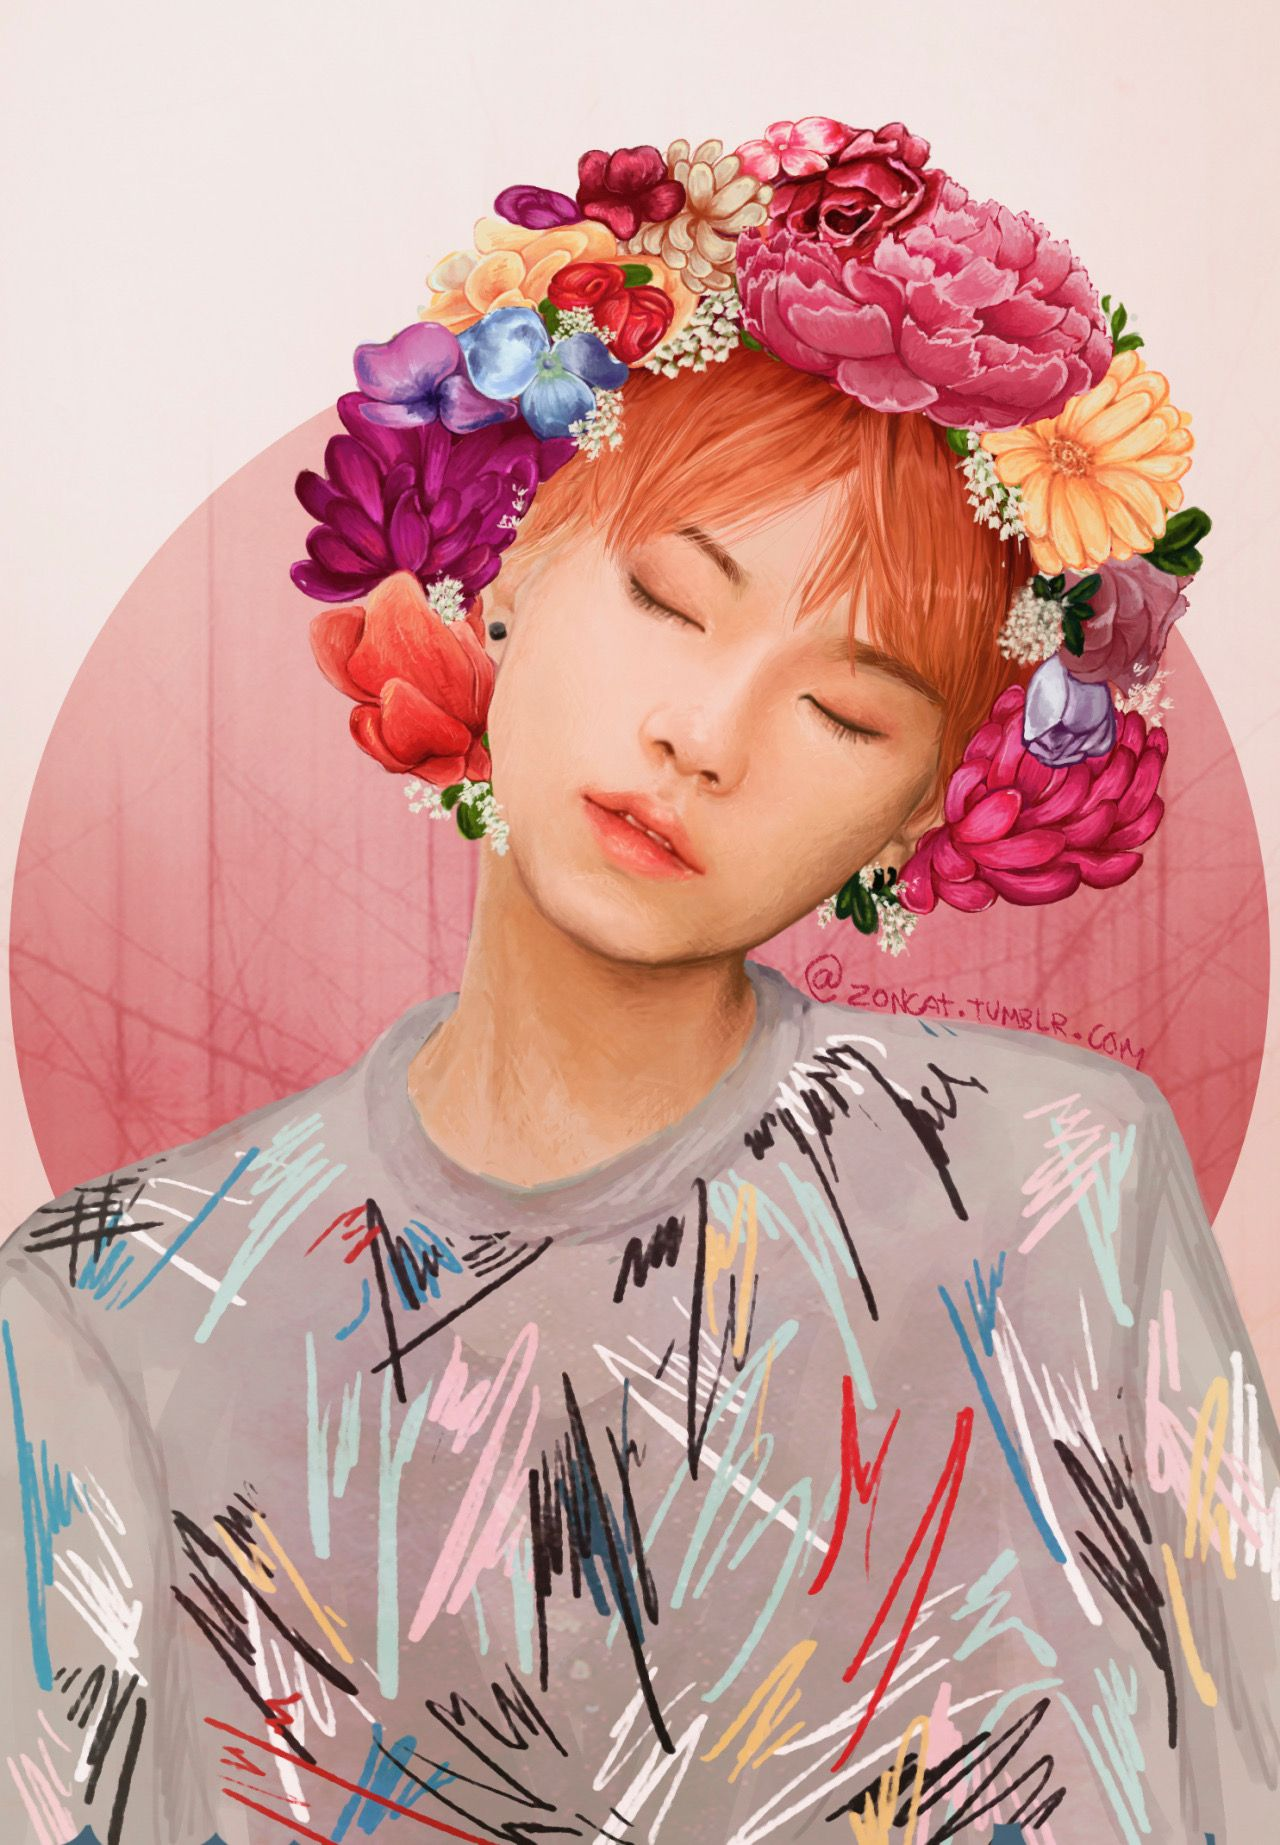 Cute Anime Watercolor Wallpaper Bad Boys Twitter Com Funsizedcat Bts Suga Bangtan Boys Min